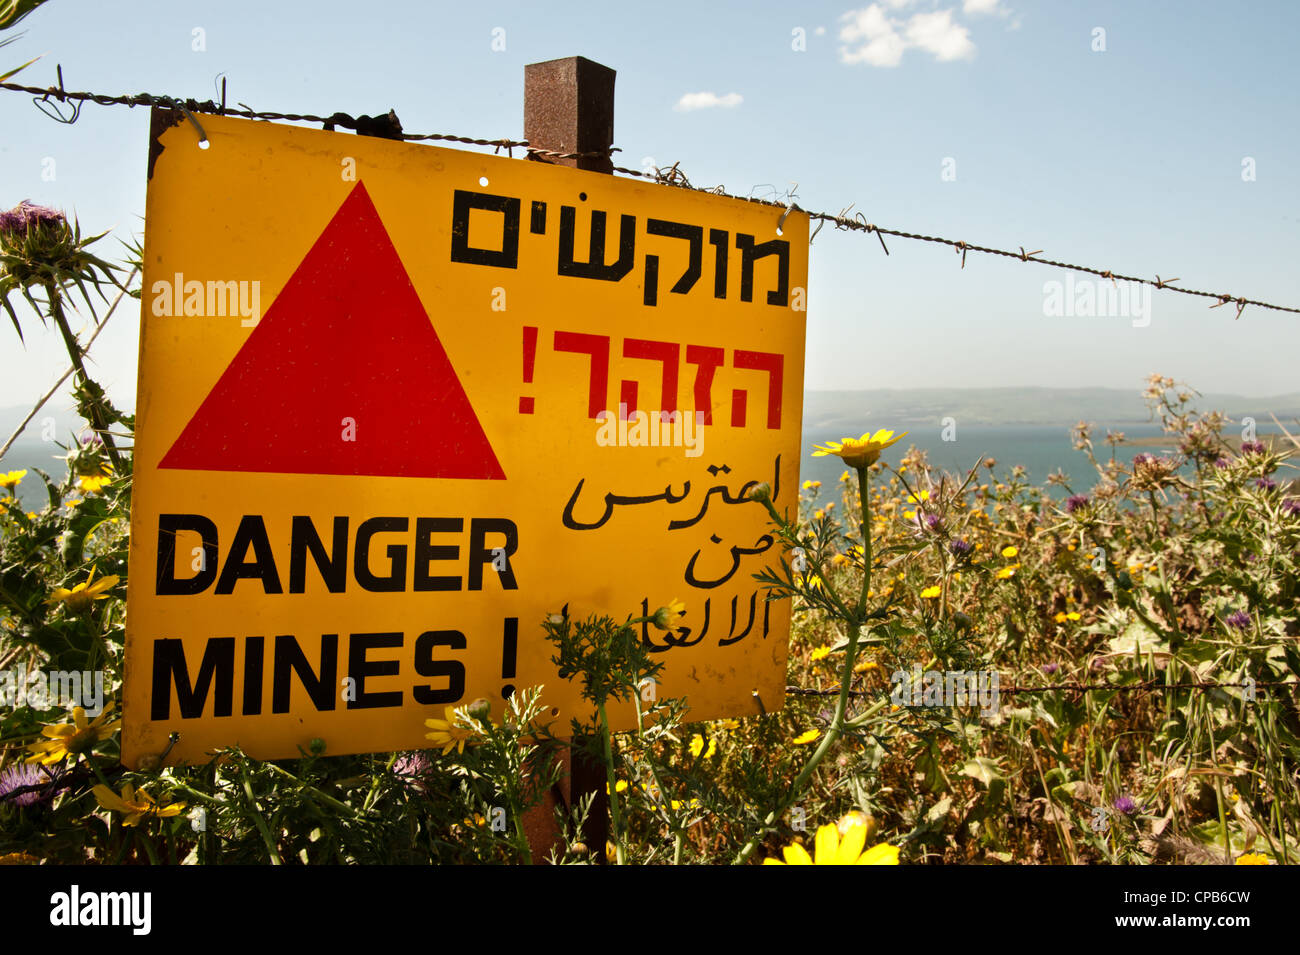 "A sign reading ""Danger Mines!"" hangs from a barbed wire fence in the Israeli occupied Golan Heights. Stock Photo"